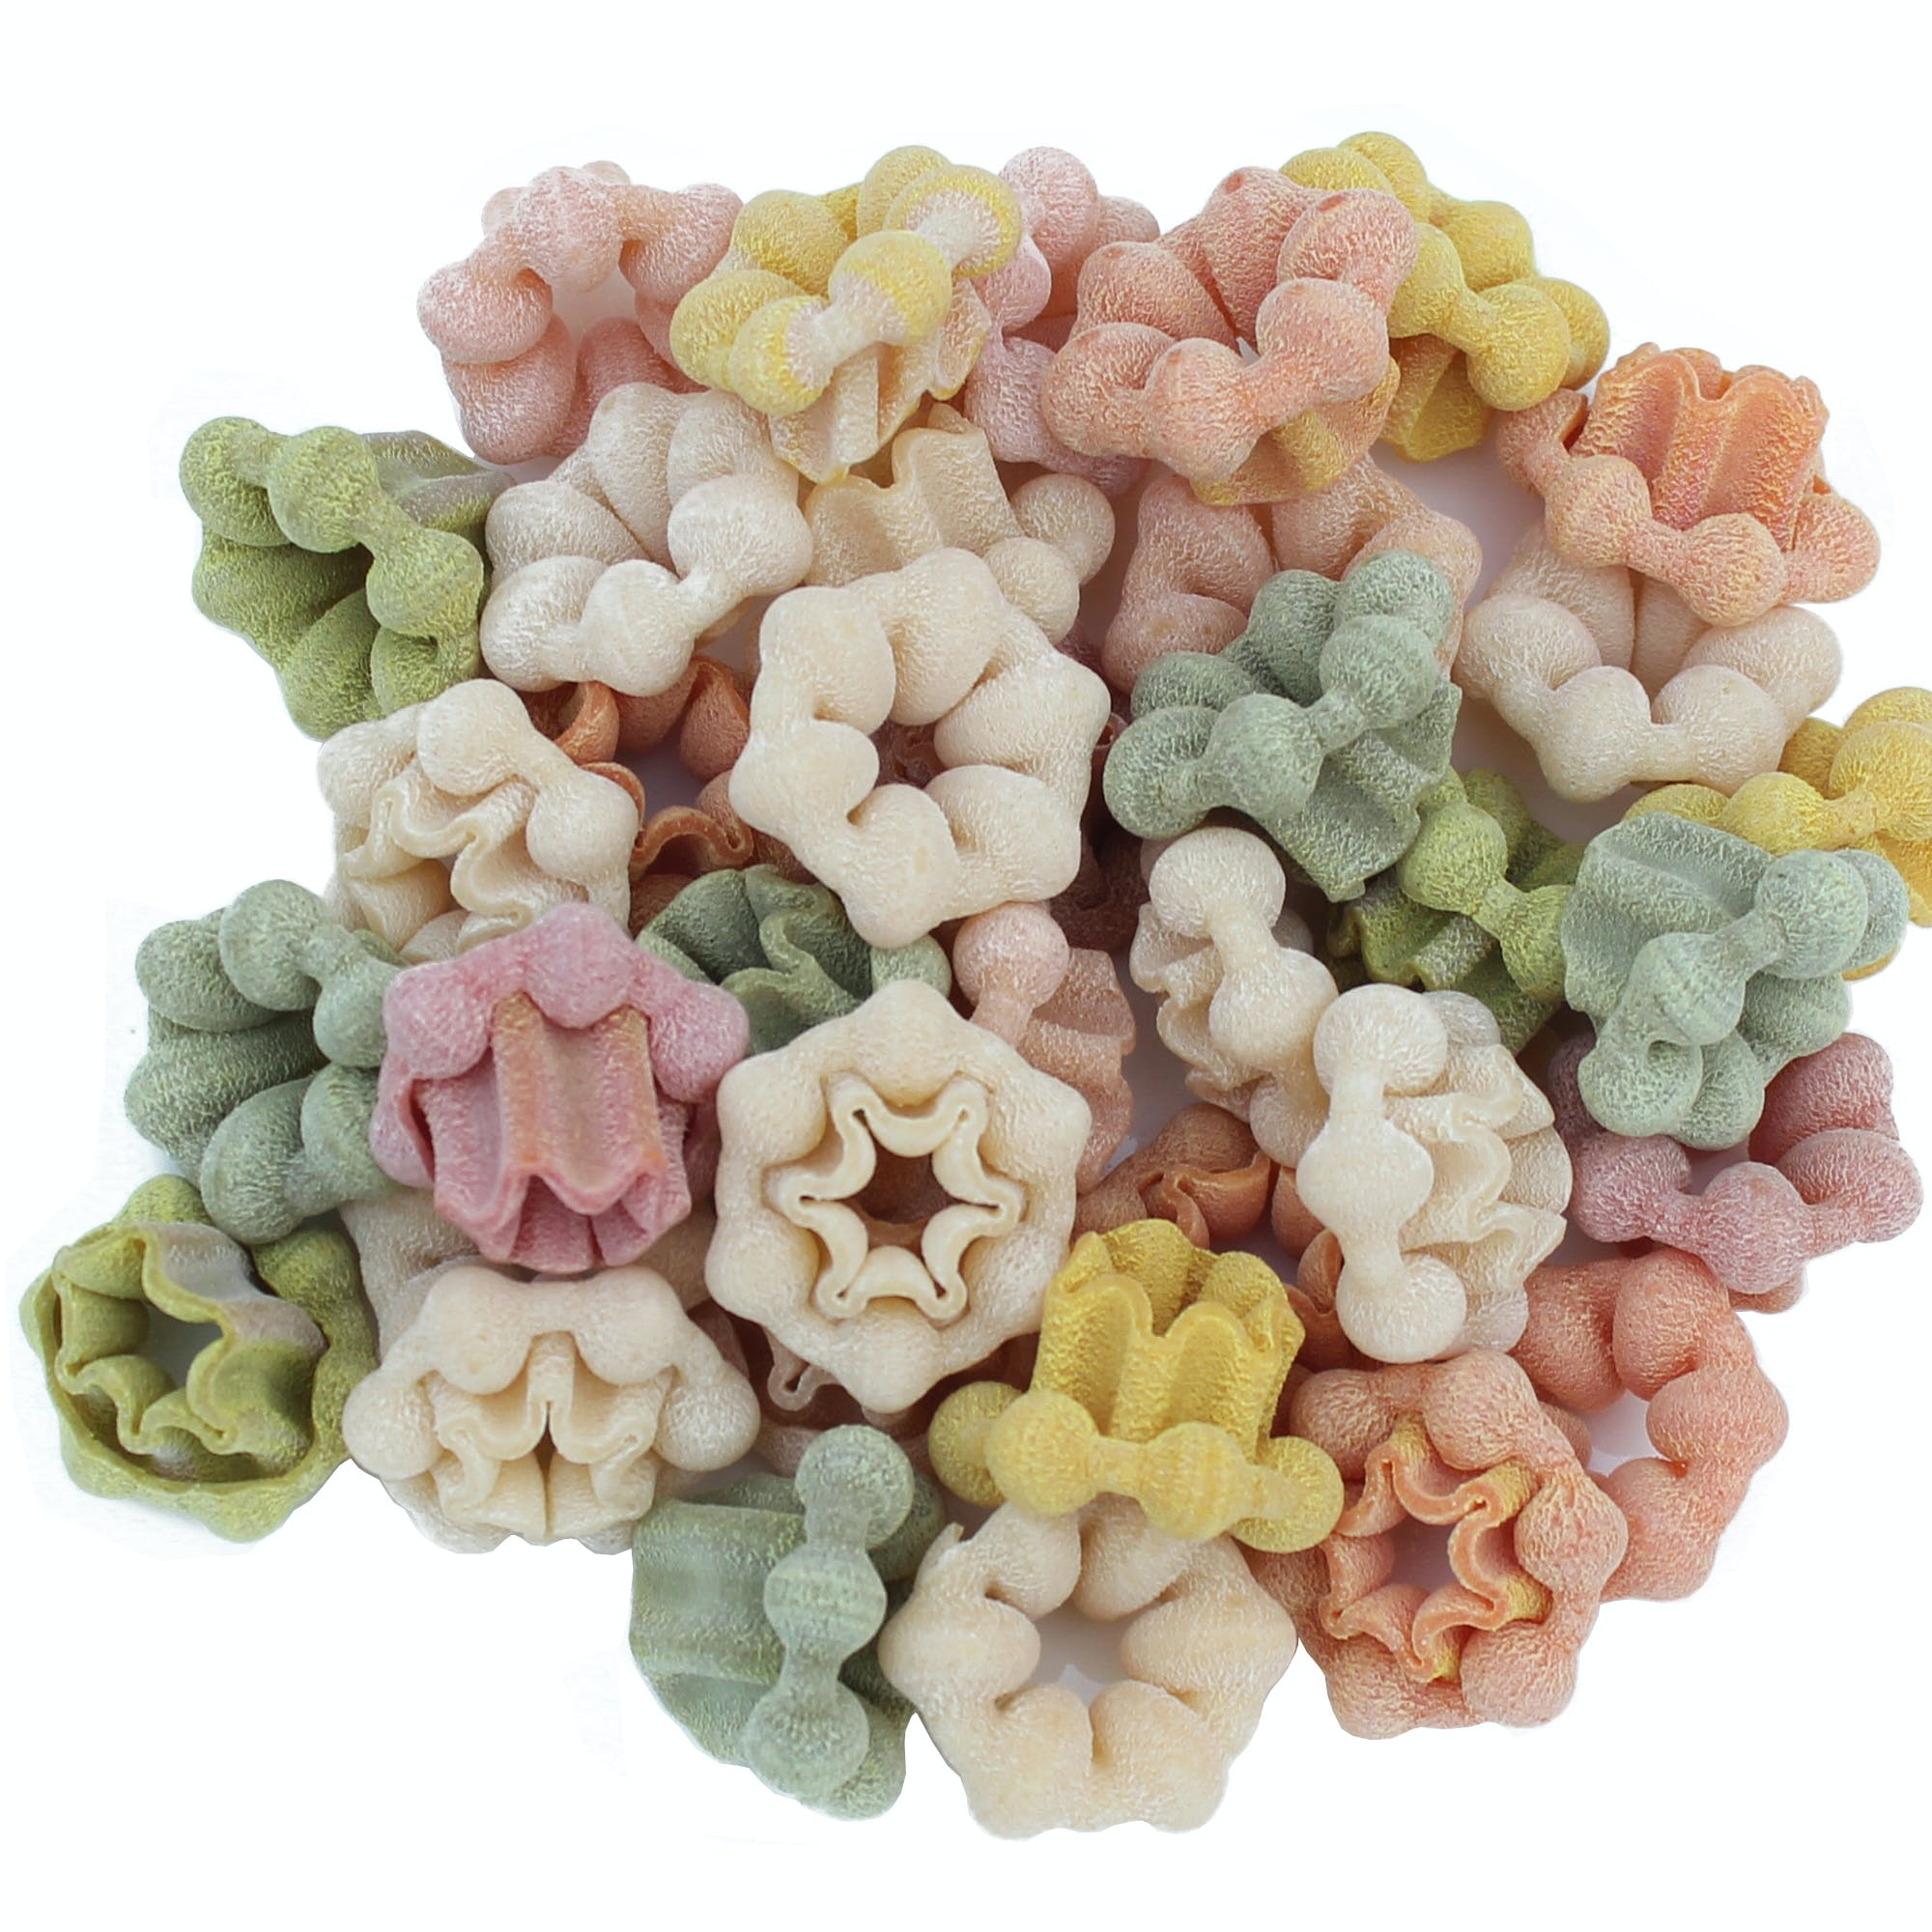 "Snowdrop ""Bucaneve"" Colored Pasta Pasta sold by M5 Corporation"